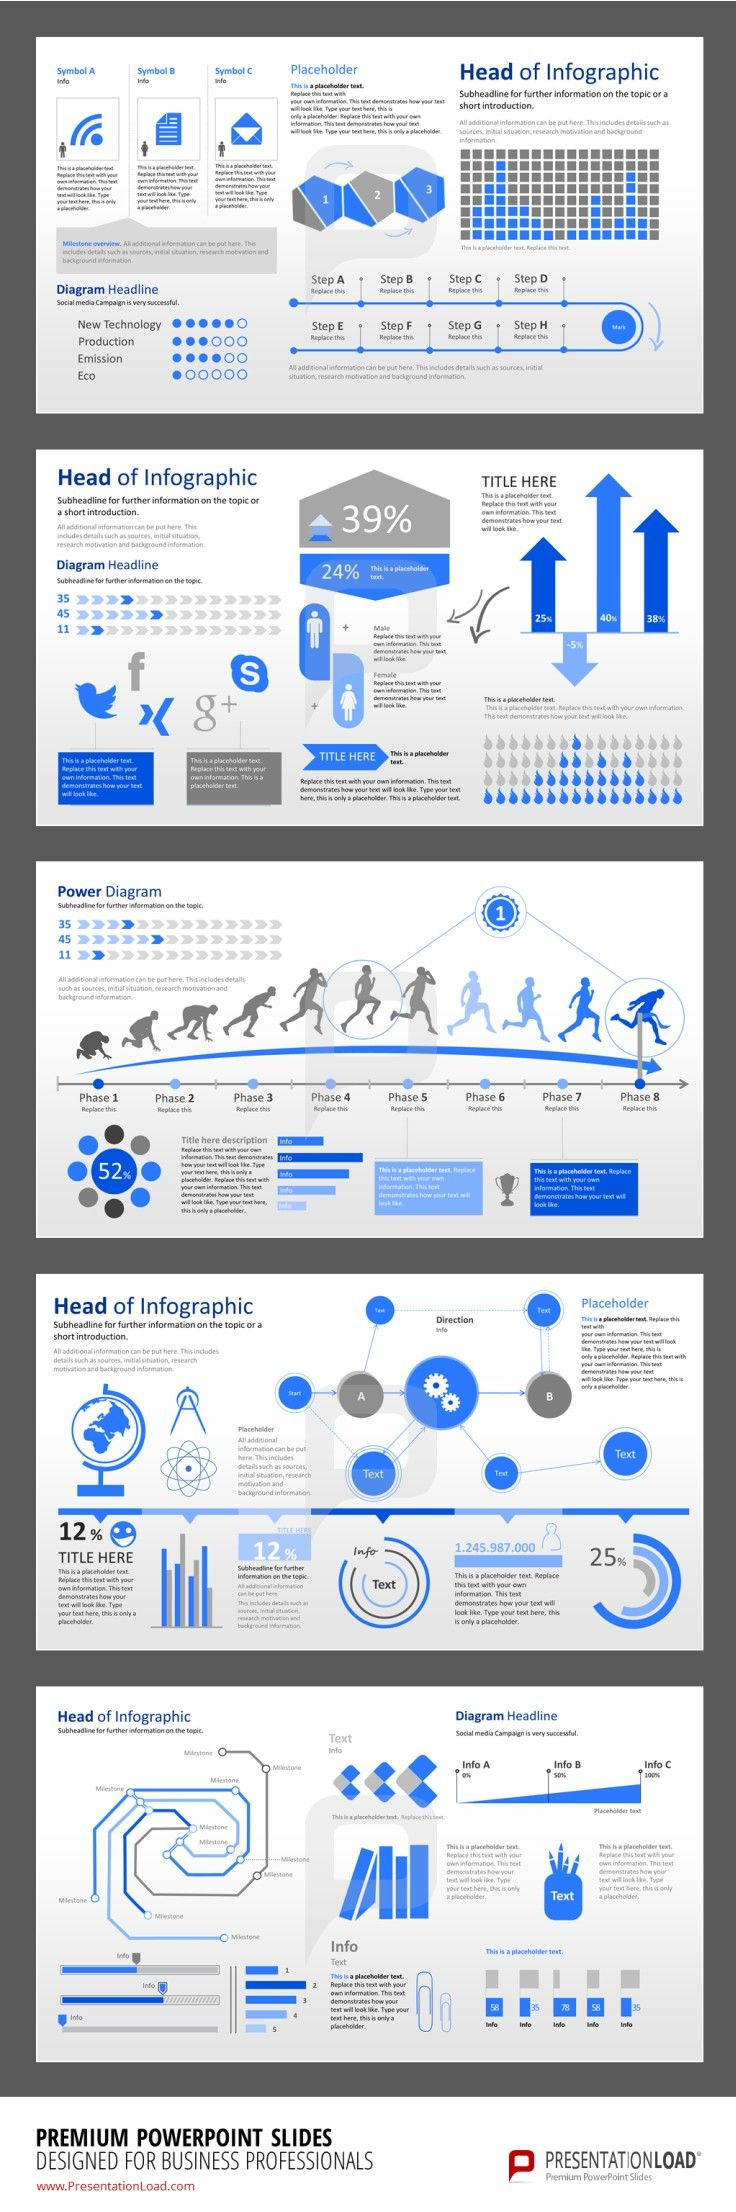 Infographic PowerPoint Templates Use Poll Charts, Thermometer Charts, Column…